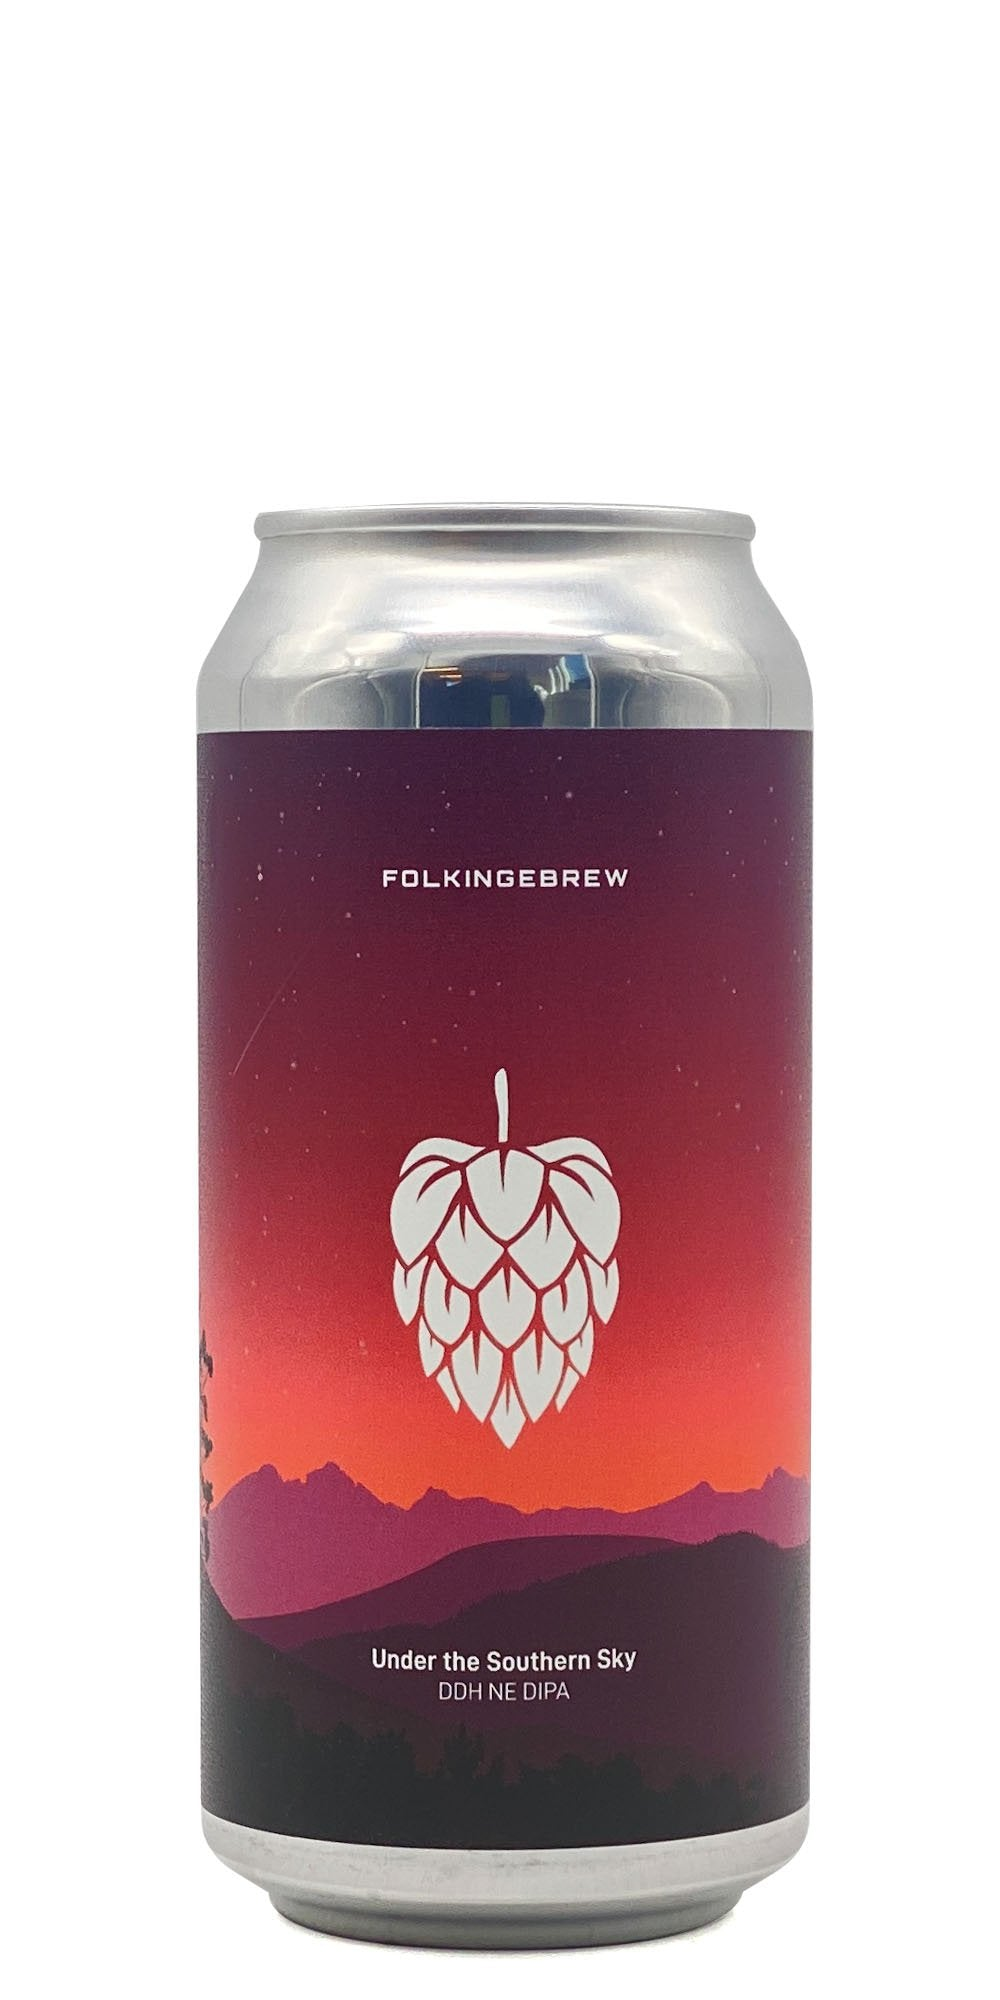 Folkingebrew - Under The Southern Sky